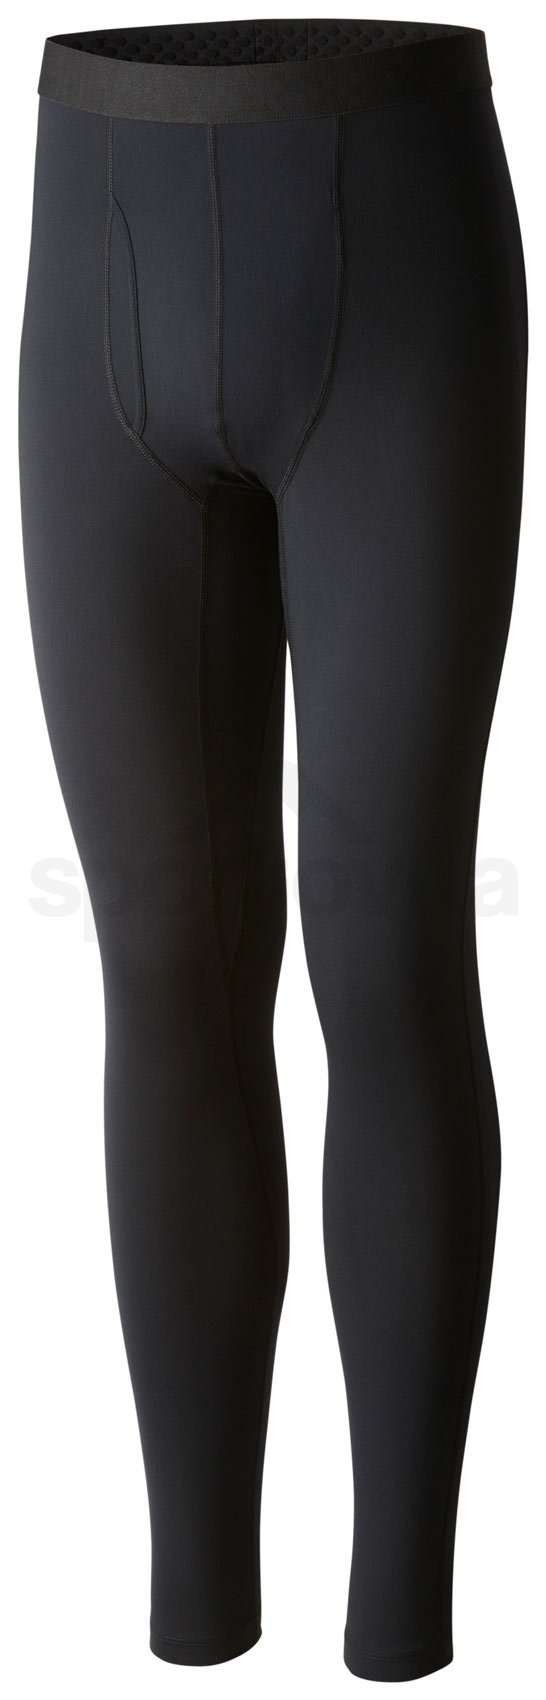 columbia-am8064-010-midweight-tight-m_1